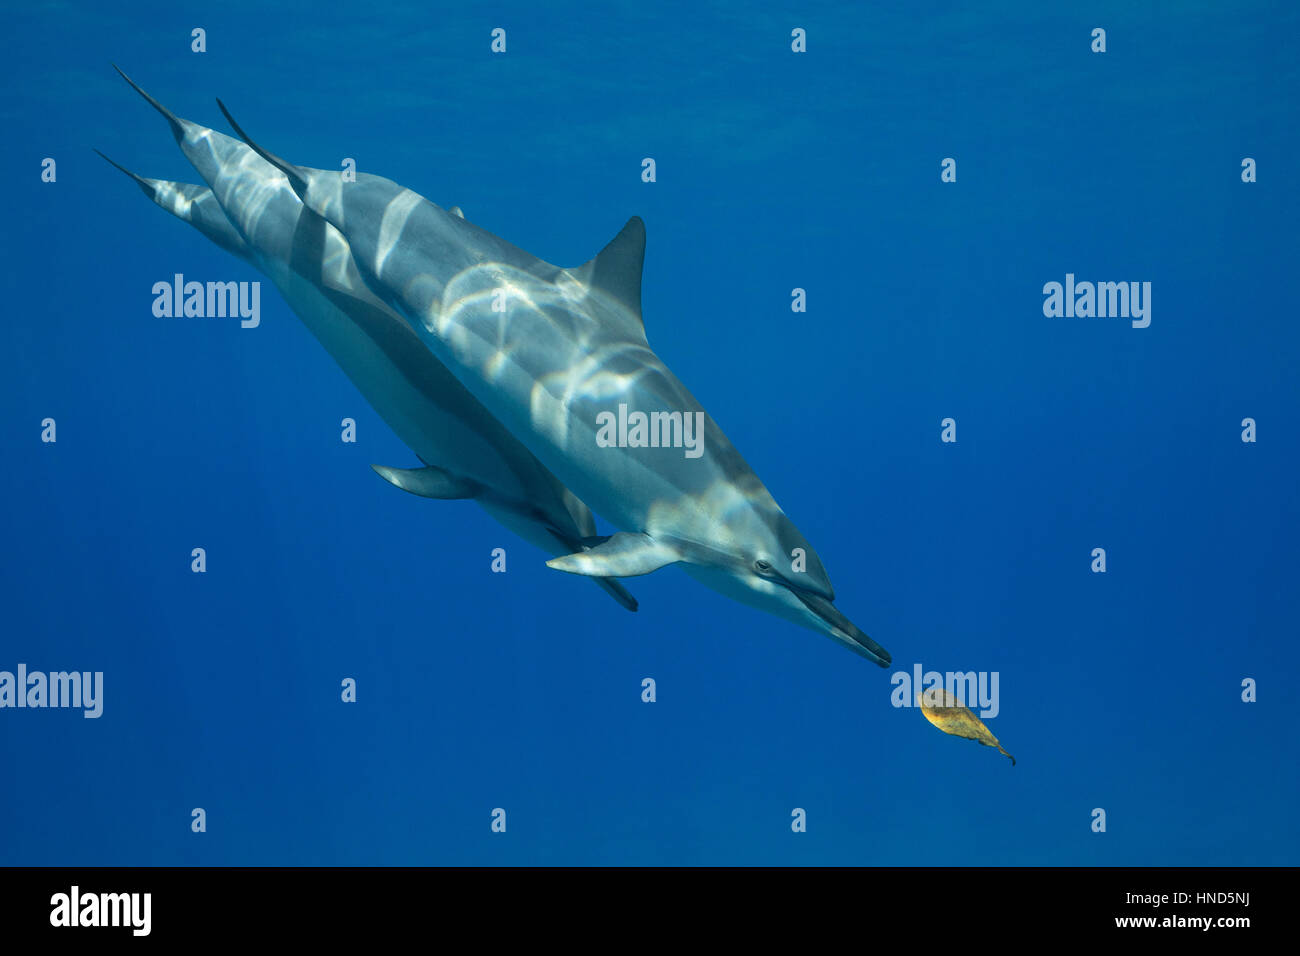 Hawaiian spinner dolphins or Gray's spinner dolphin, Stenella longirostris longirostris, playing with leaf, - Stock Image